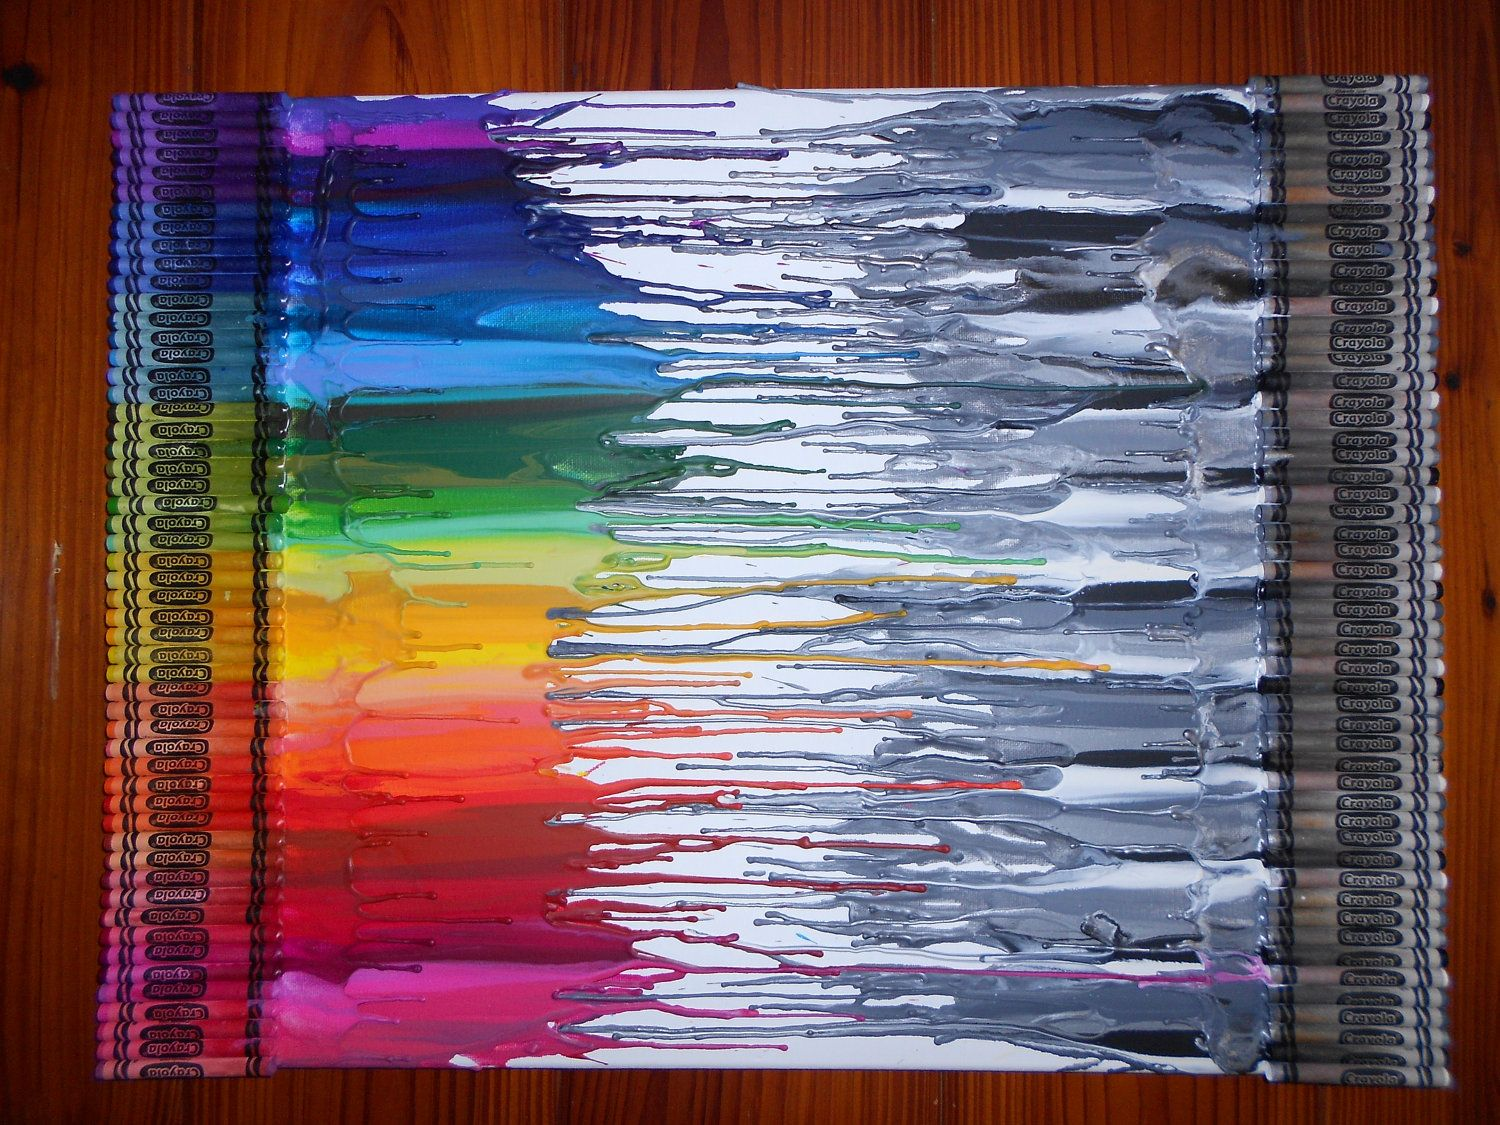 color crayon art : Black White Vs Color Melted Crayon Art